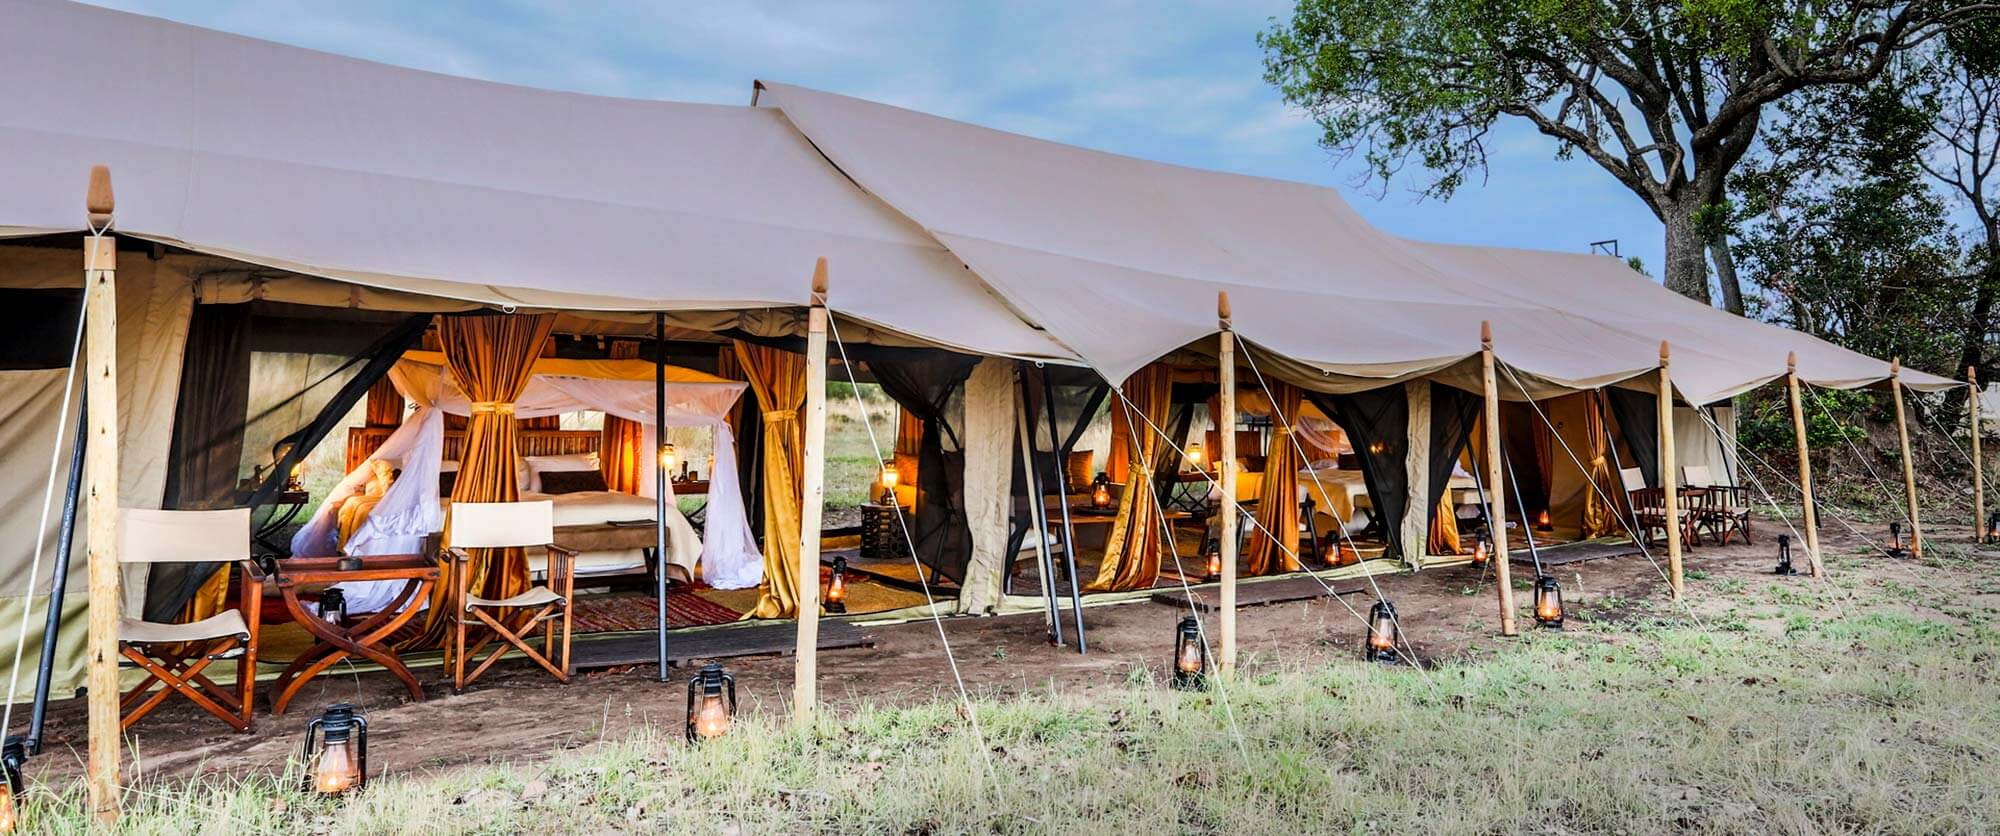 Family Tent at Legendary Serengeti Mobile Camp Safari - Great Migration Safari Packages